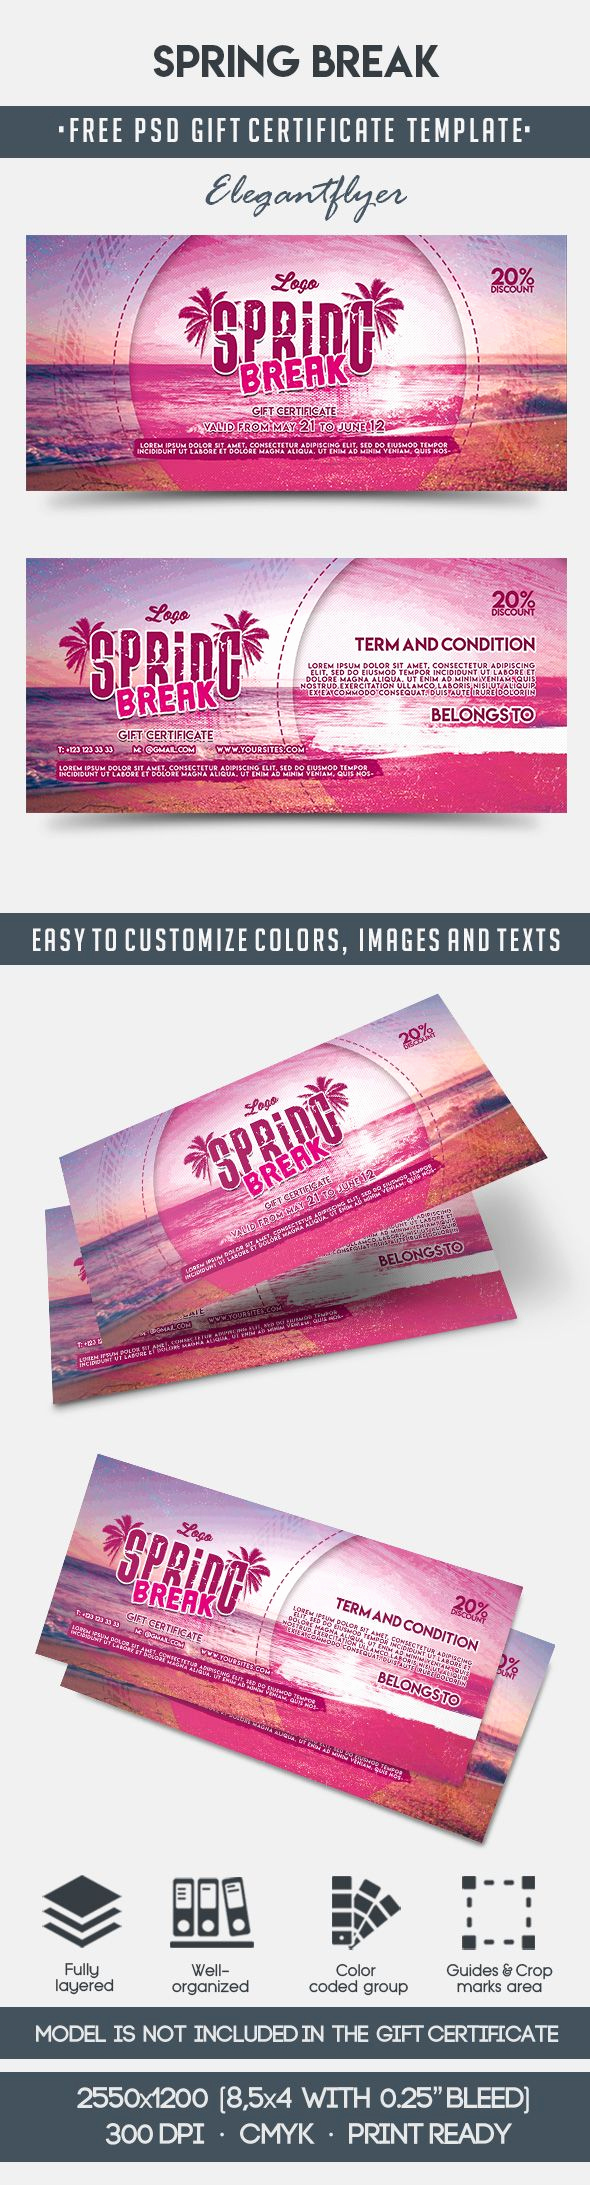 Gift Certificate Template Psd Lovely Spring Break – Free Gift Certificate Psd Template – by